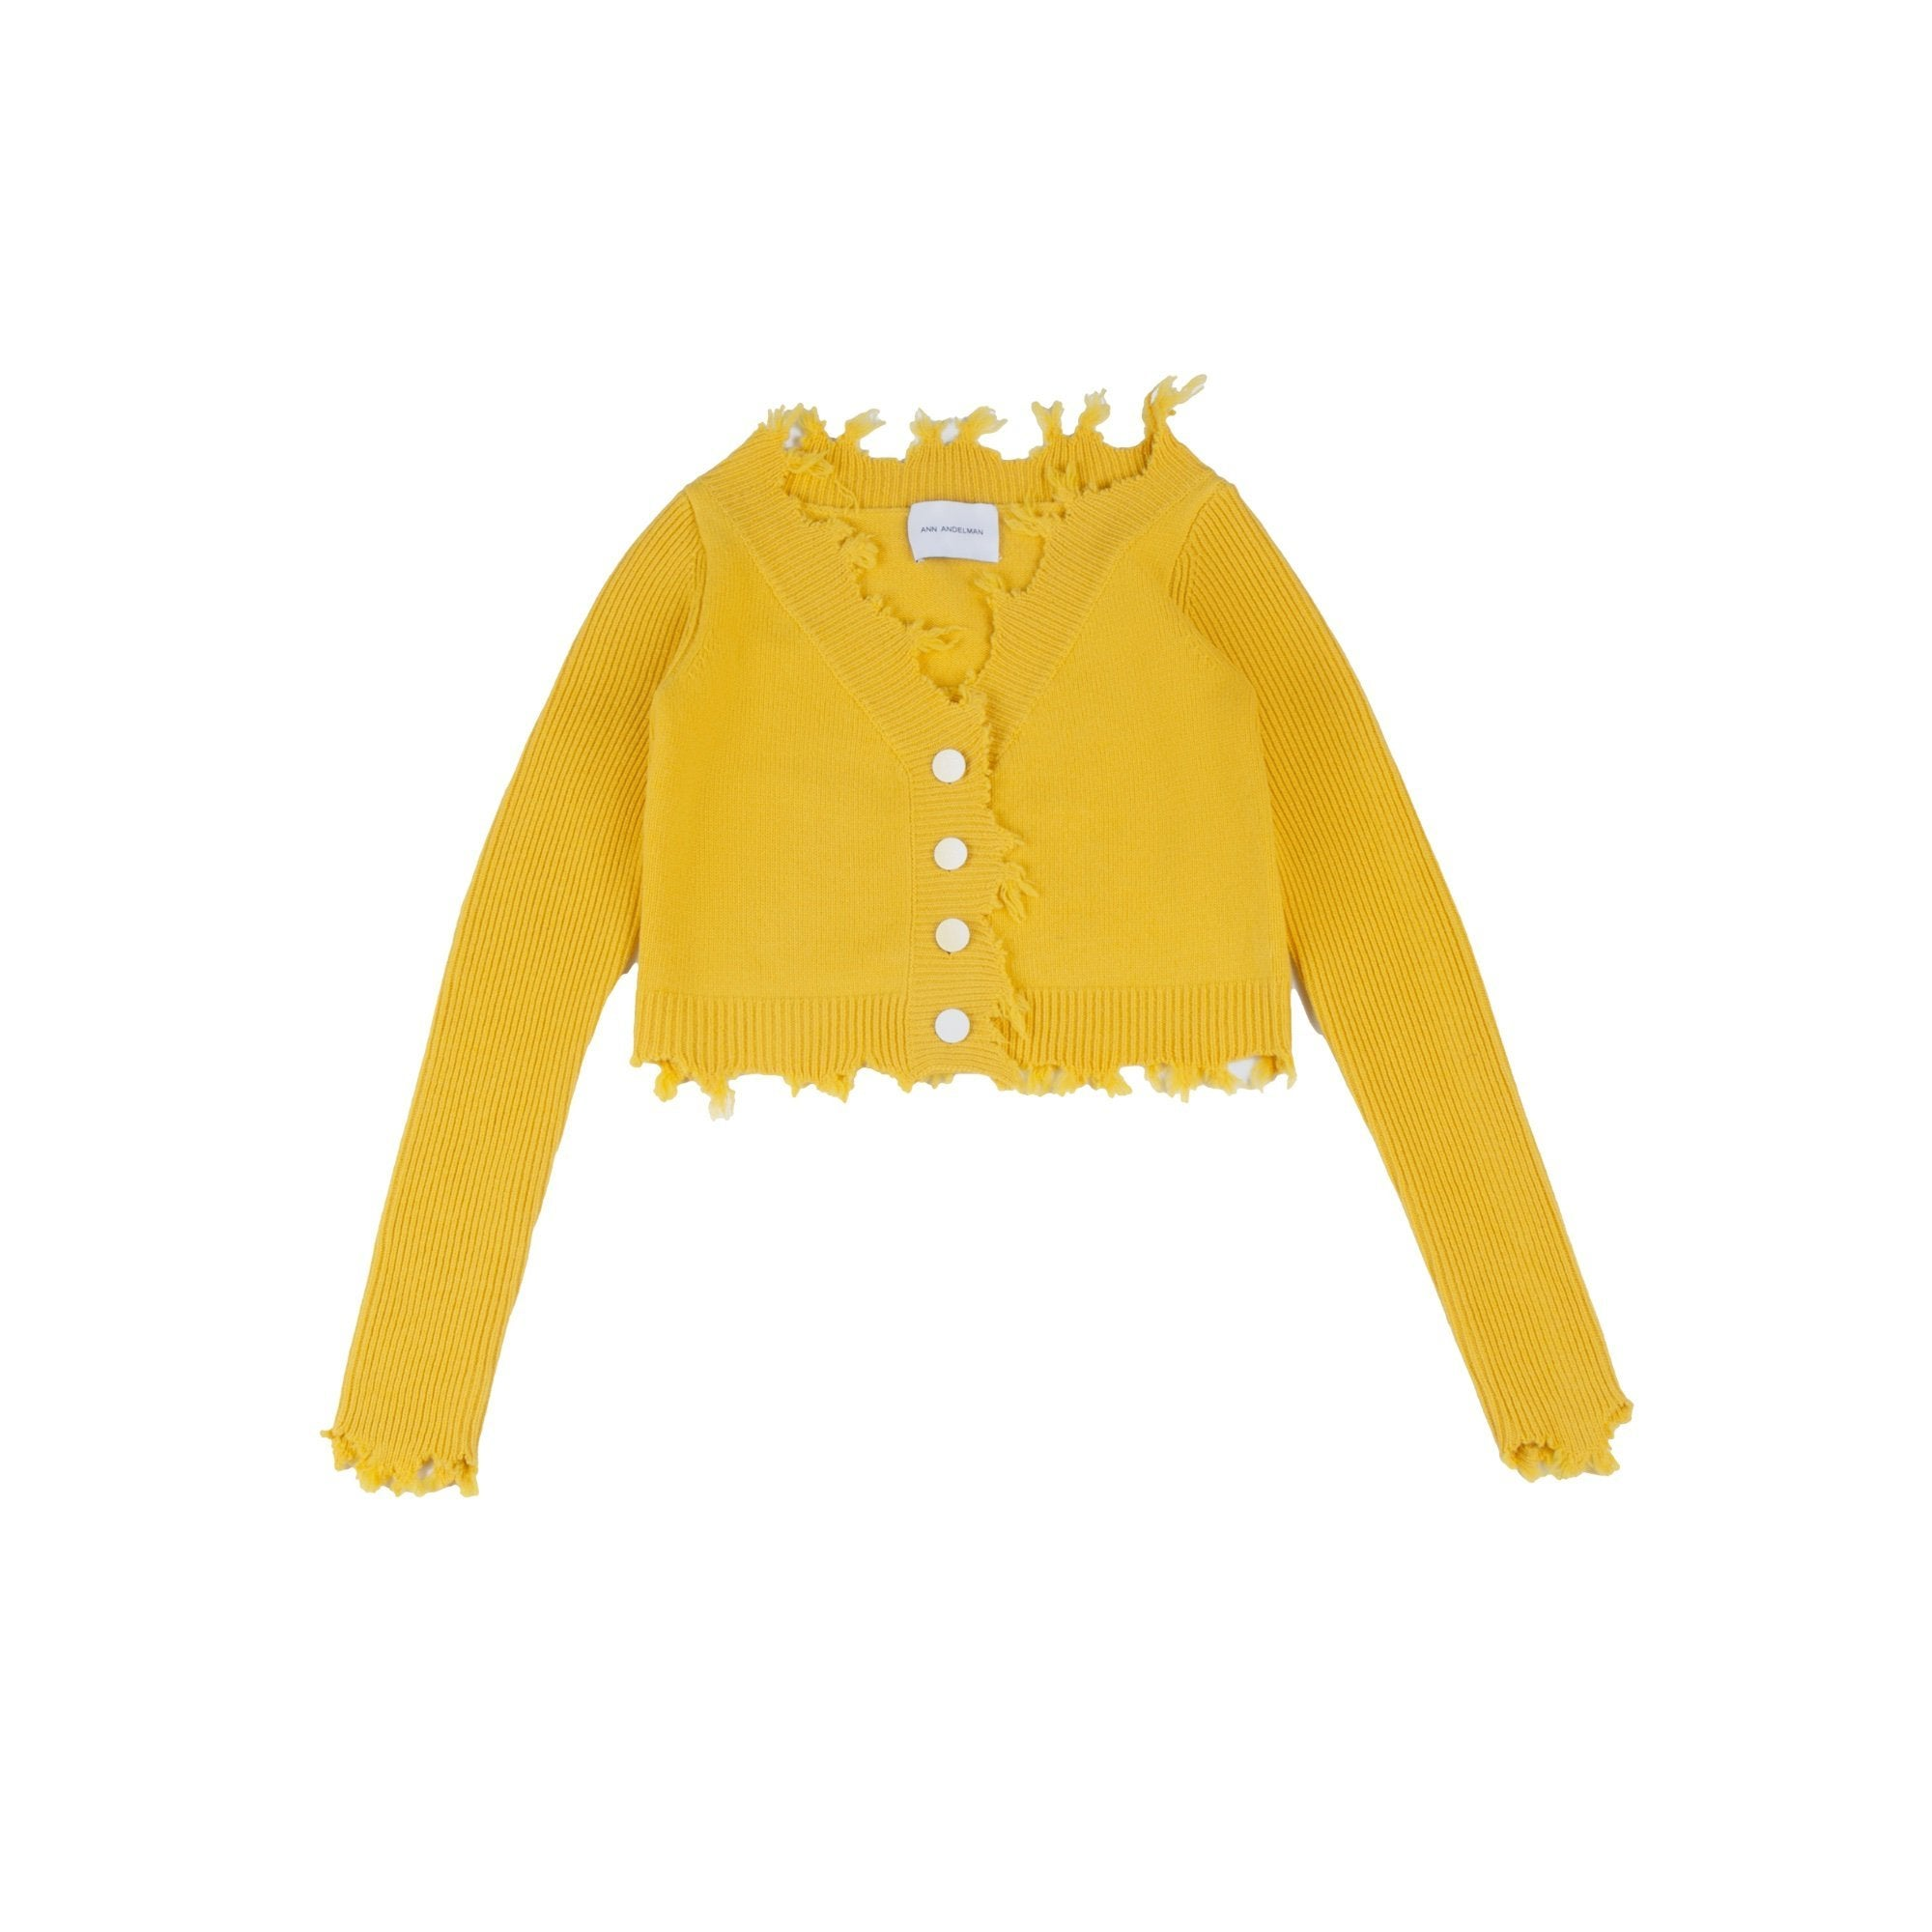 ANN ANDELMAN Destroyed Cardigan Yellow | MADA IN CHINA